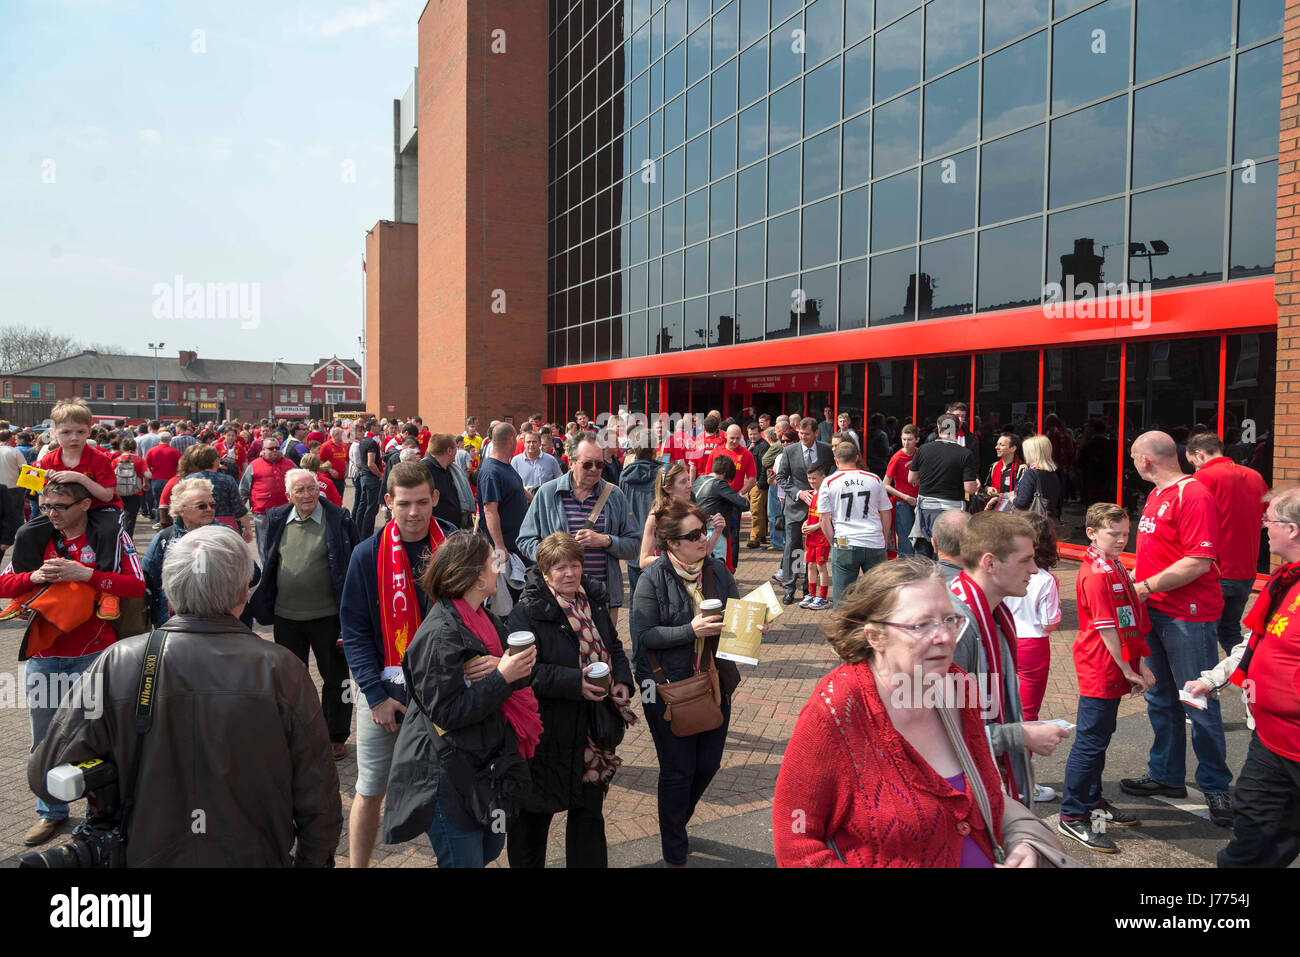 Anfield crowd at main stand - Stock Image